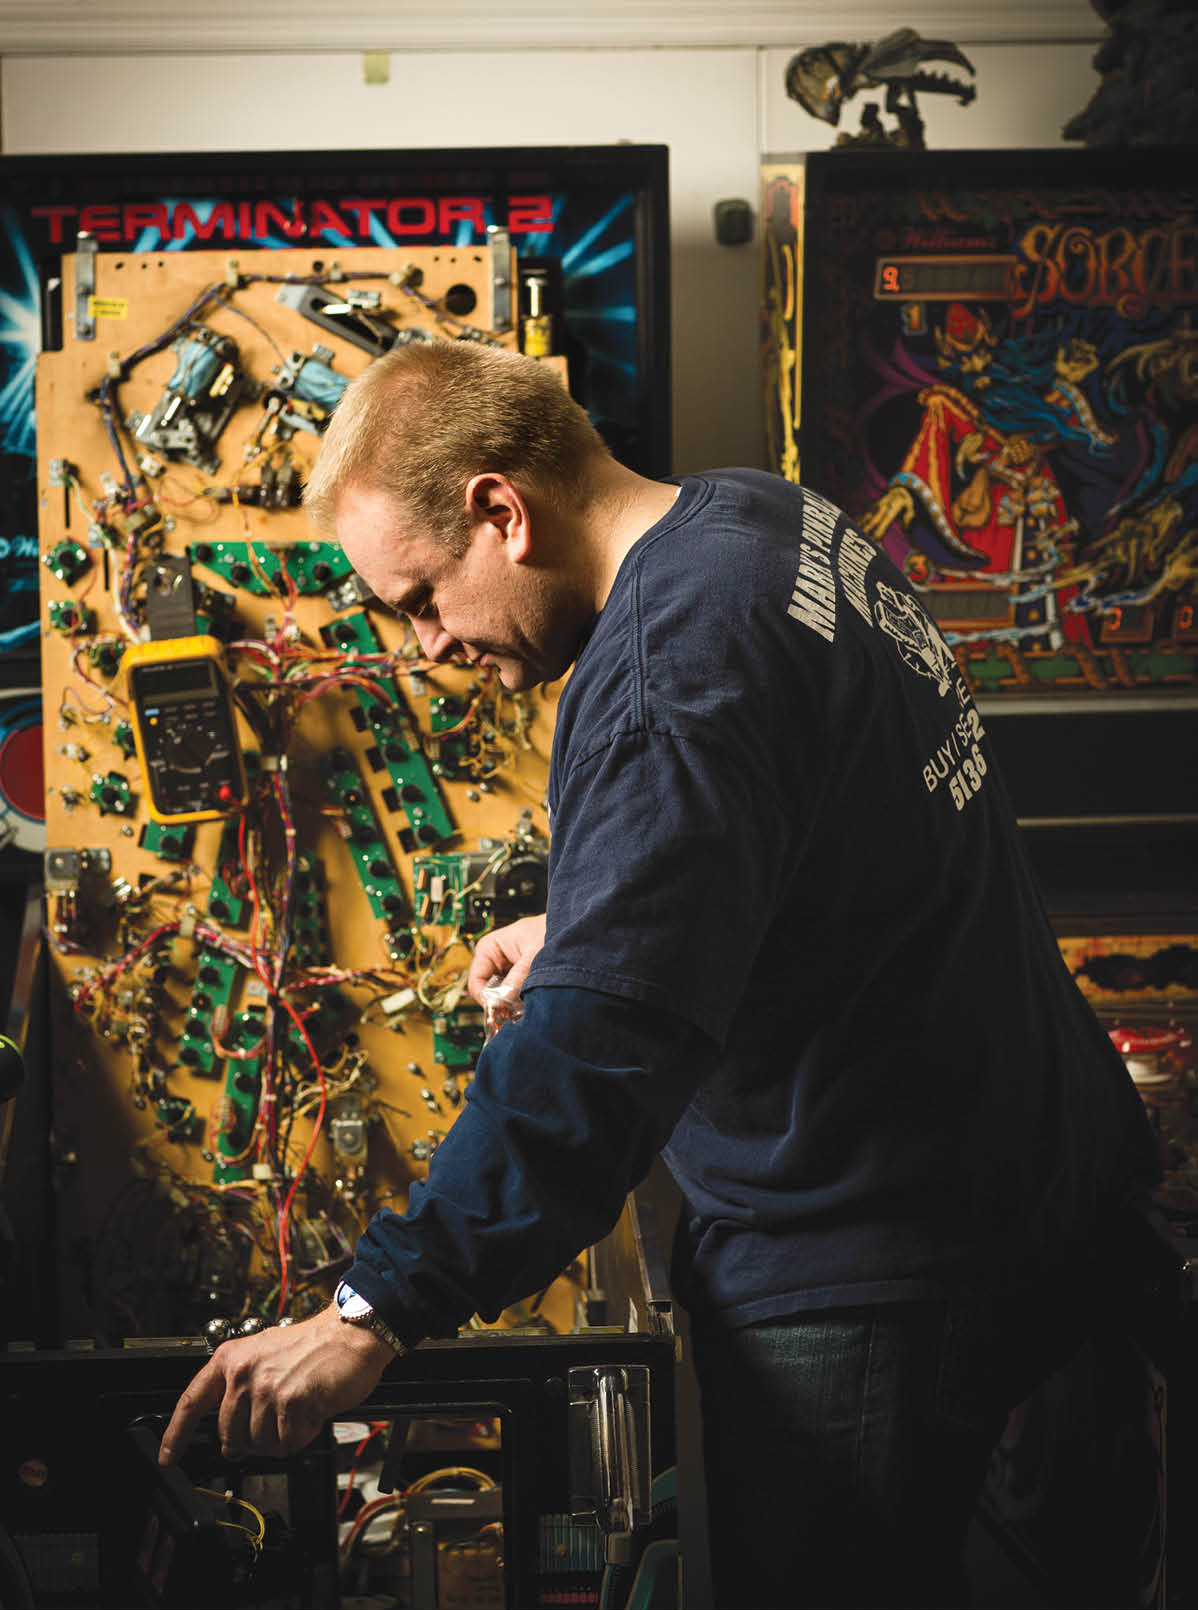 Mark Combs, owner of his own pinball repair shop, inspects the circuitry inside Terminator 2